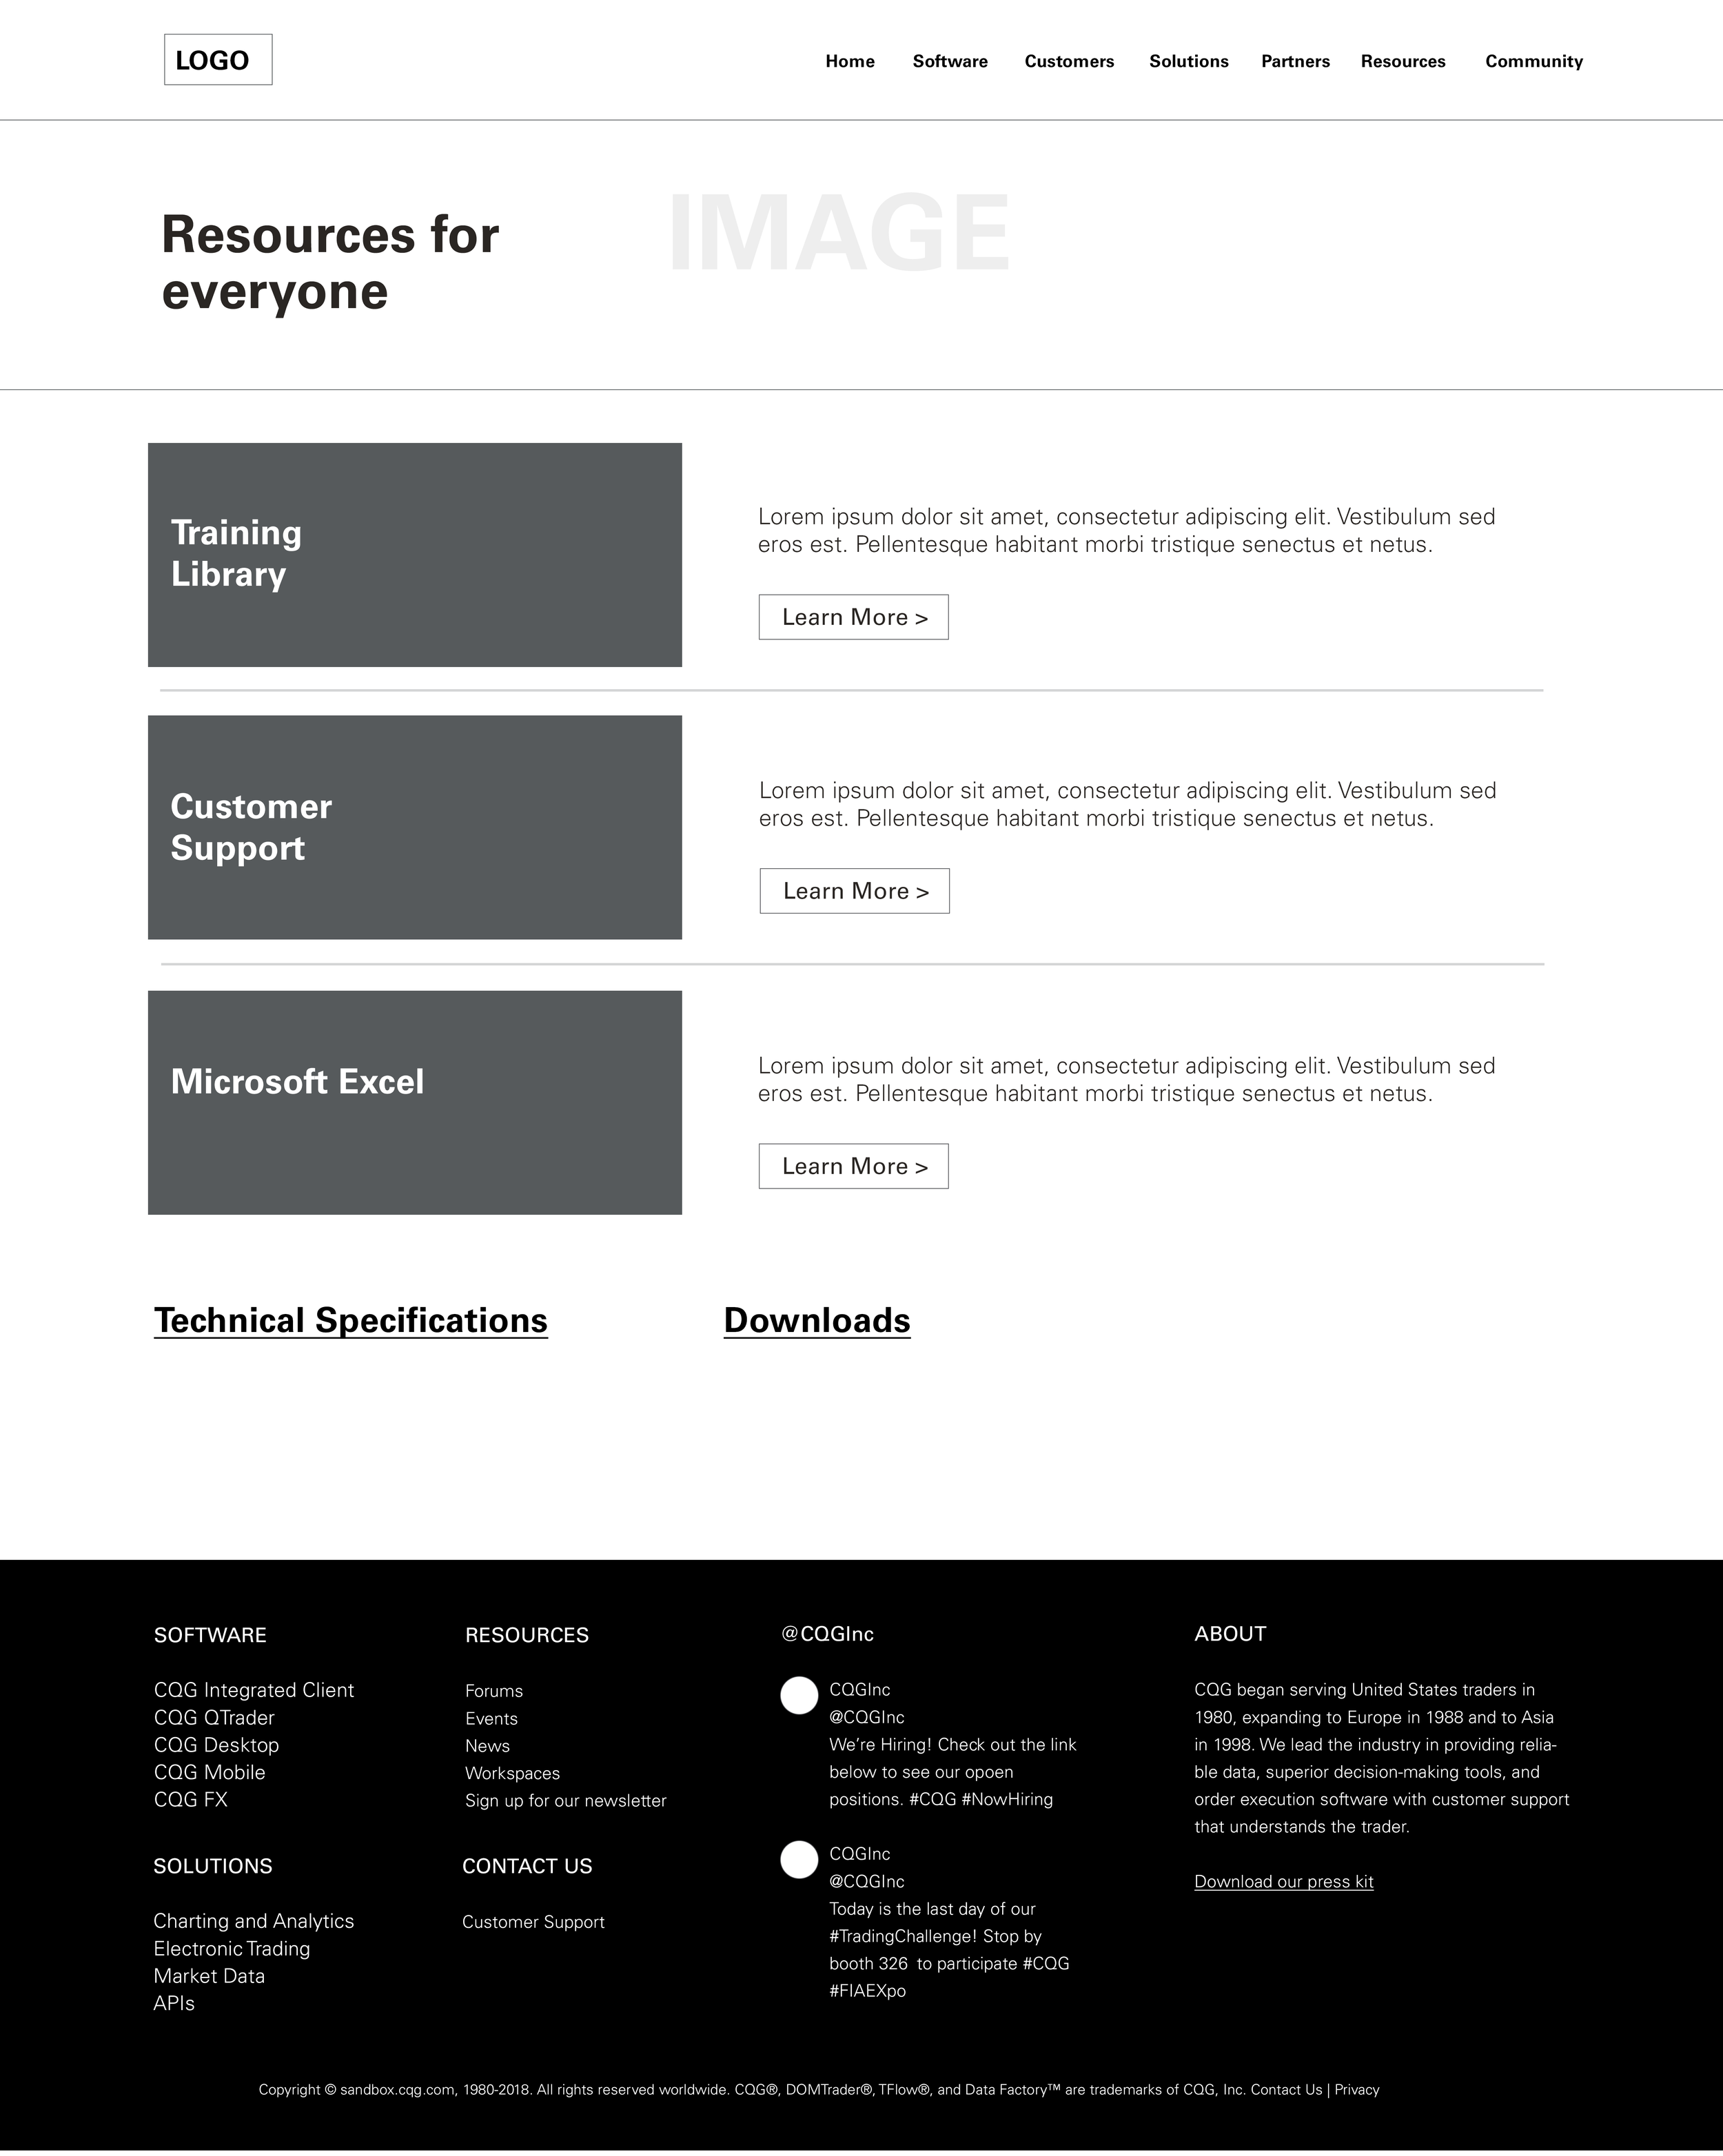 Wireframe_RESOURCES_Landing.png